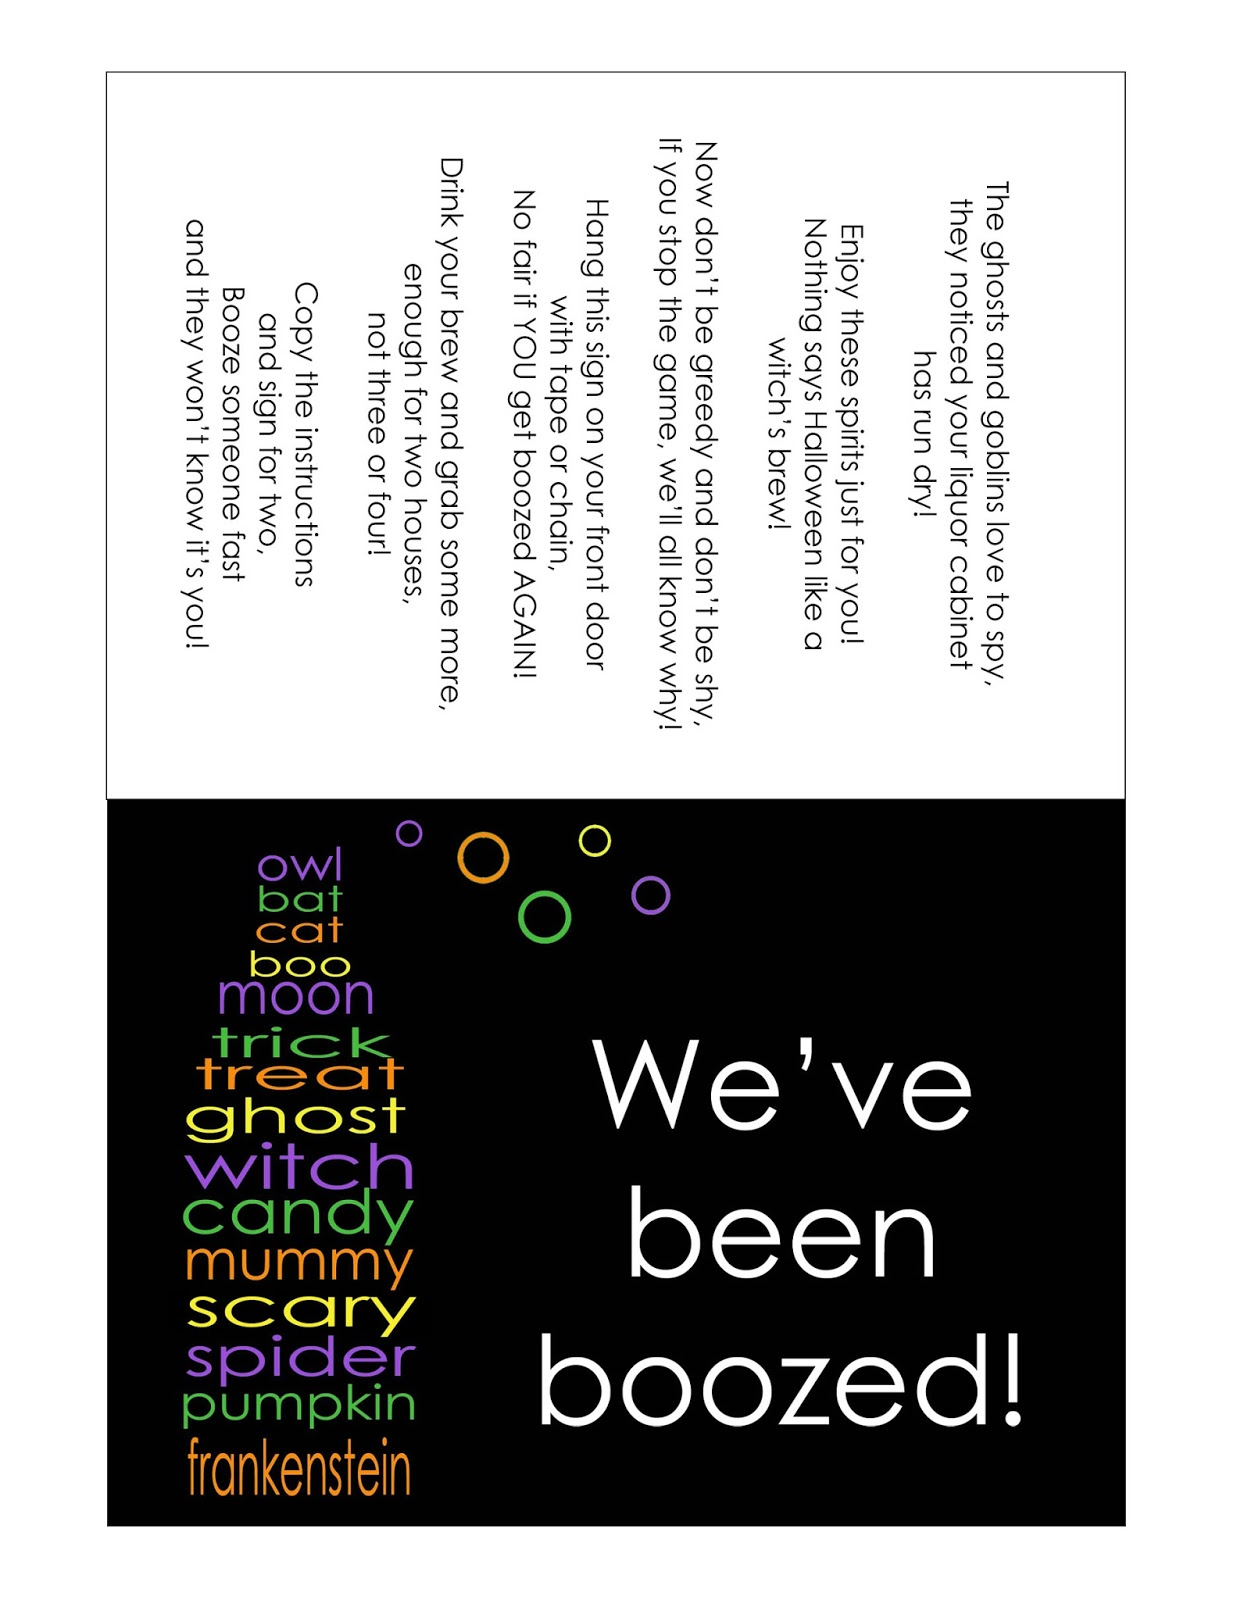 photograph relating to You've Been Boozed Printable named The Larson Lingo: Weve been BOO-zed